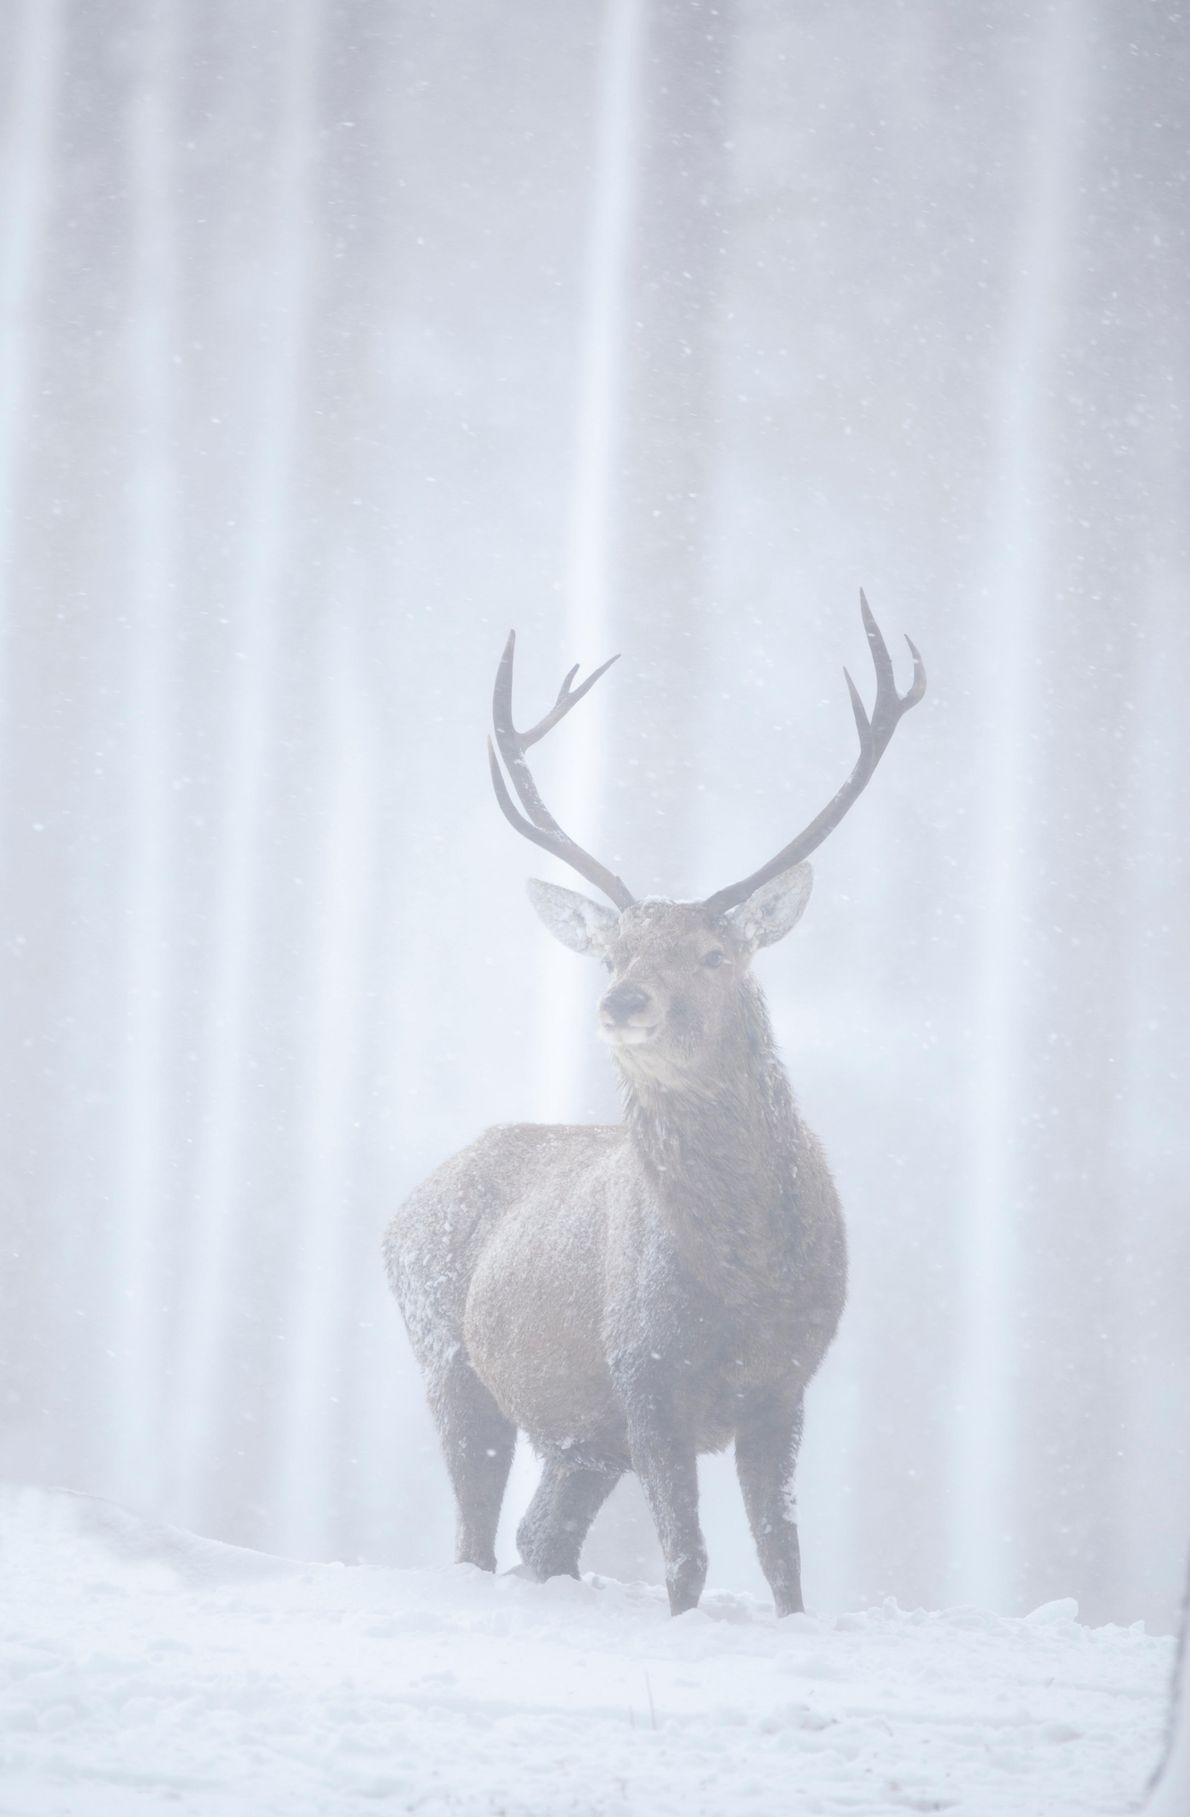 A glimpse of a red deer stag through a blizzard on the Alvie Estate, Cairngorms National ...